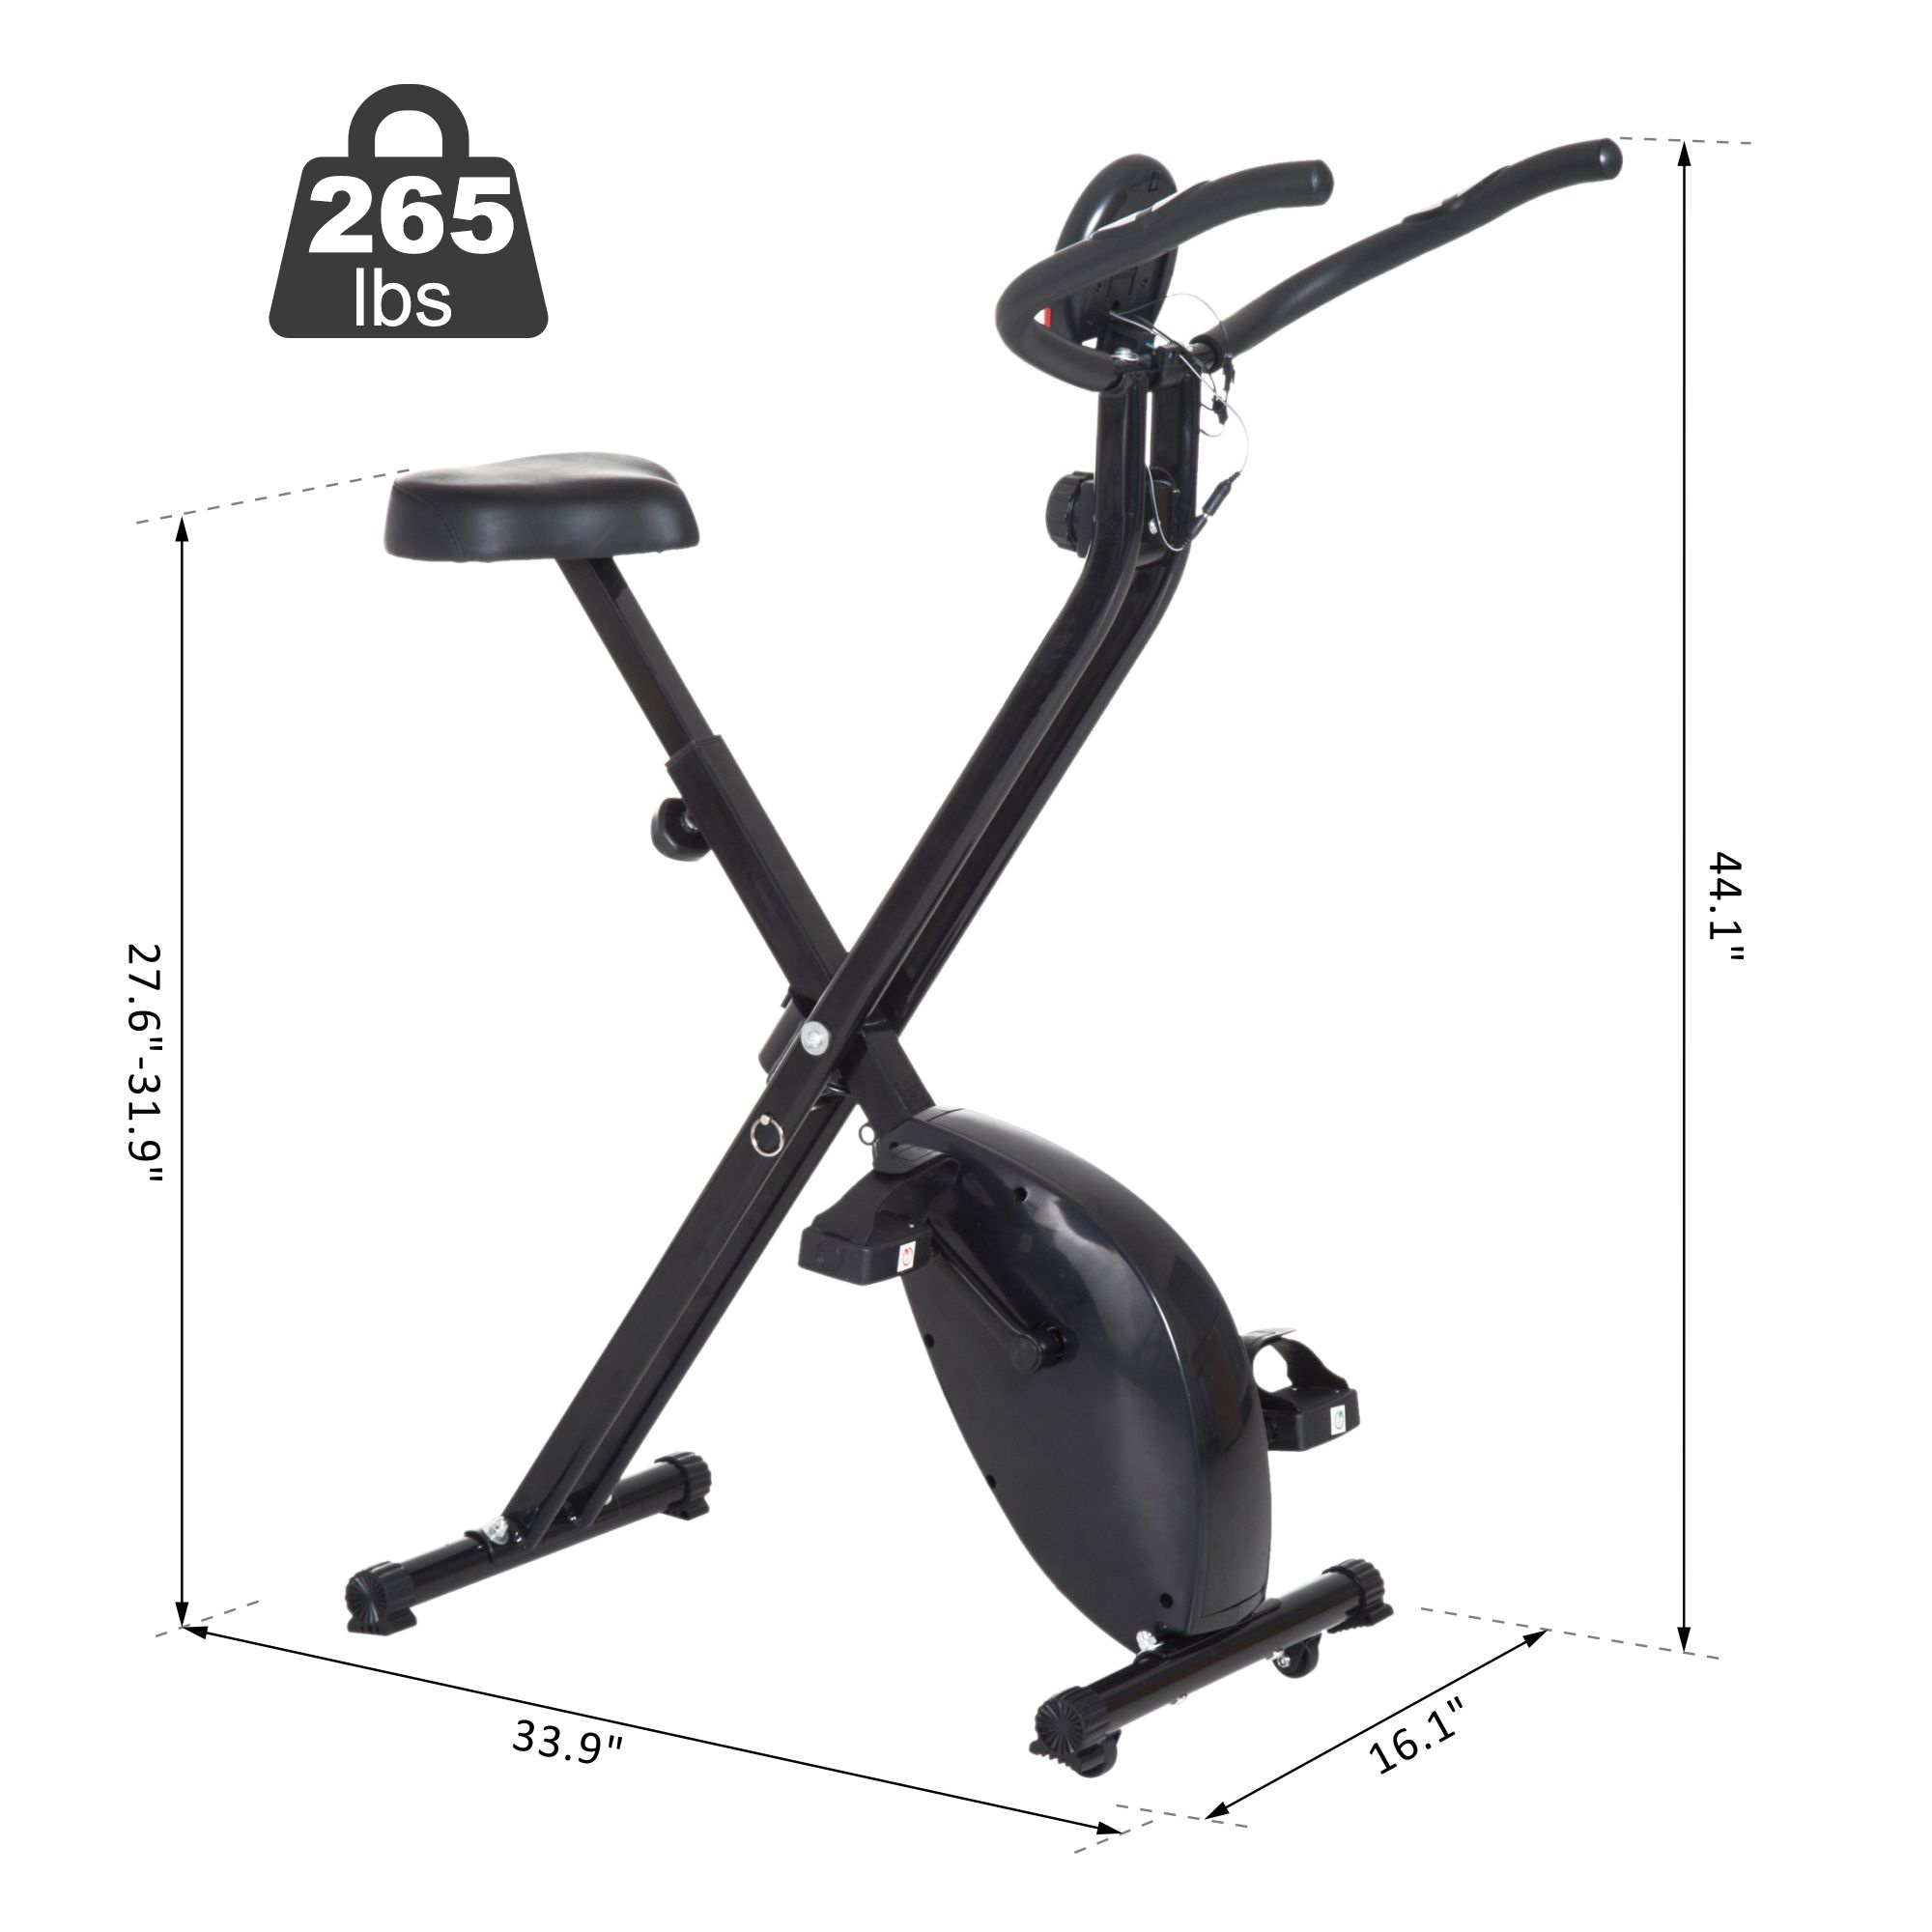 Terrific Details About Soozier Stationary Upright Bike Foldable Exercise Bike 8 Level Resistance Pulse Creativecarmelina Interior Chair Design Creativecarmelinacom